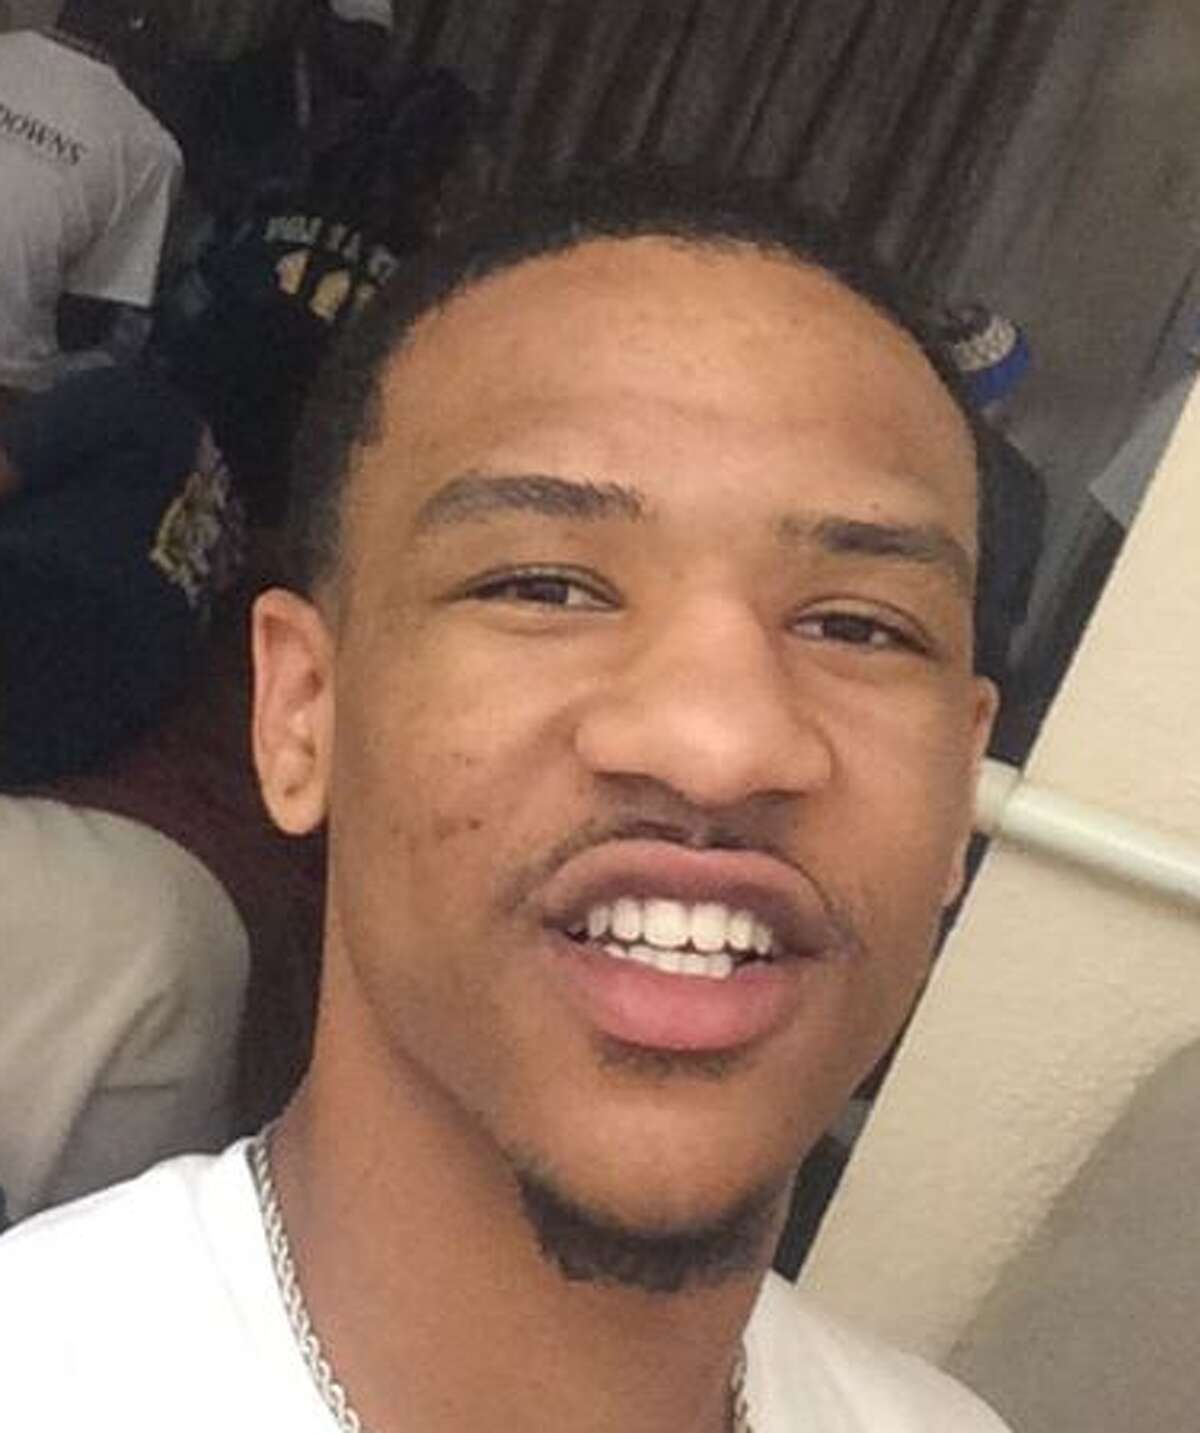 Anthony Green, 20, was shot and killed at a Beaumont gas station on Dec. 28. Photo: provided by family